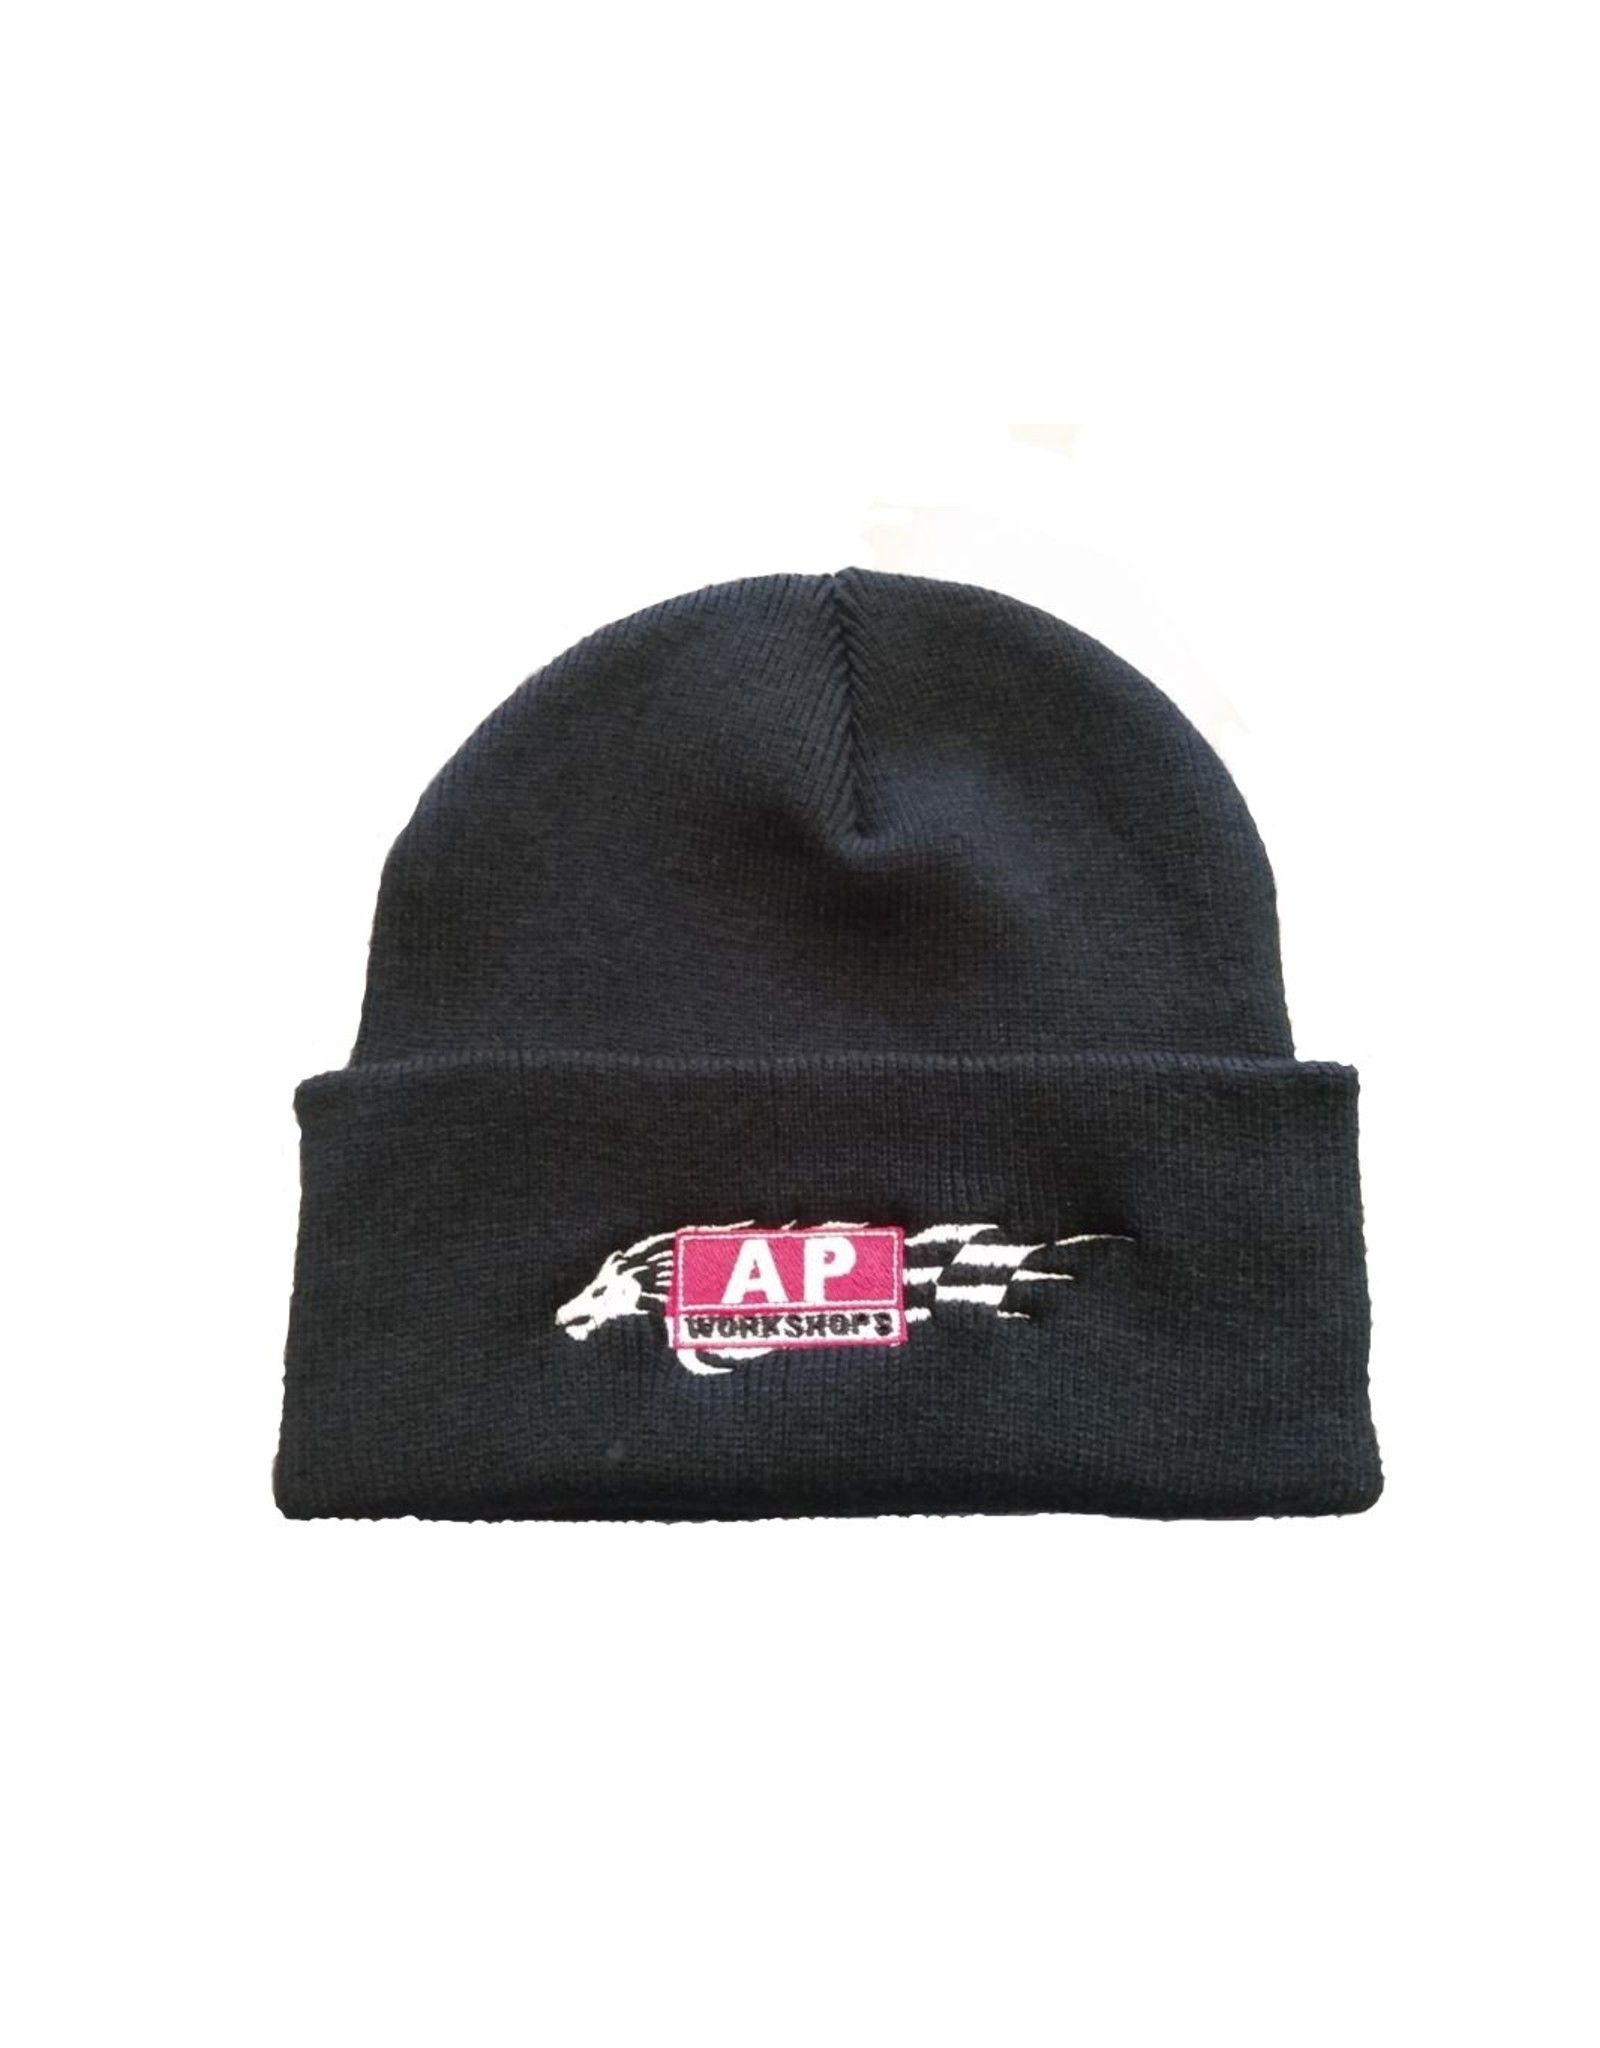 AP workshops AP workshops beanie , fold fit